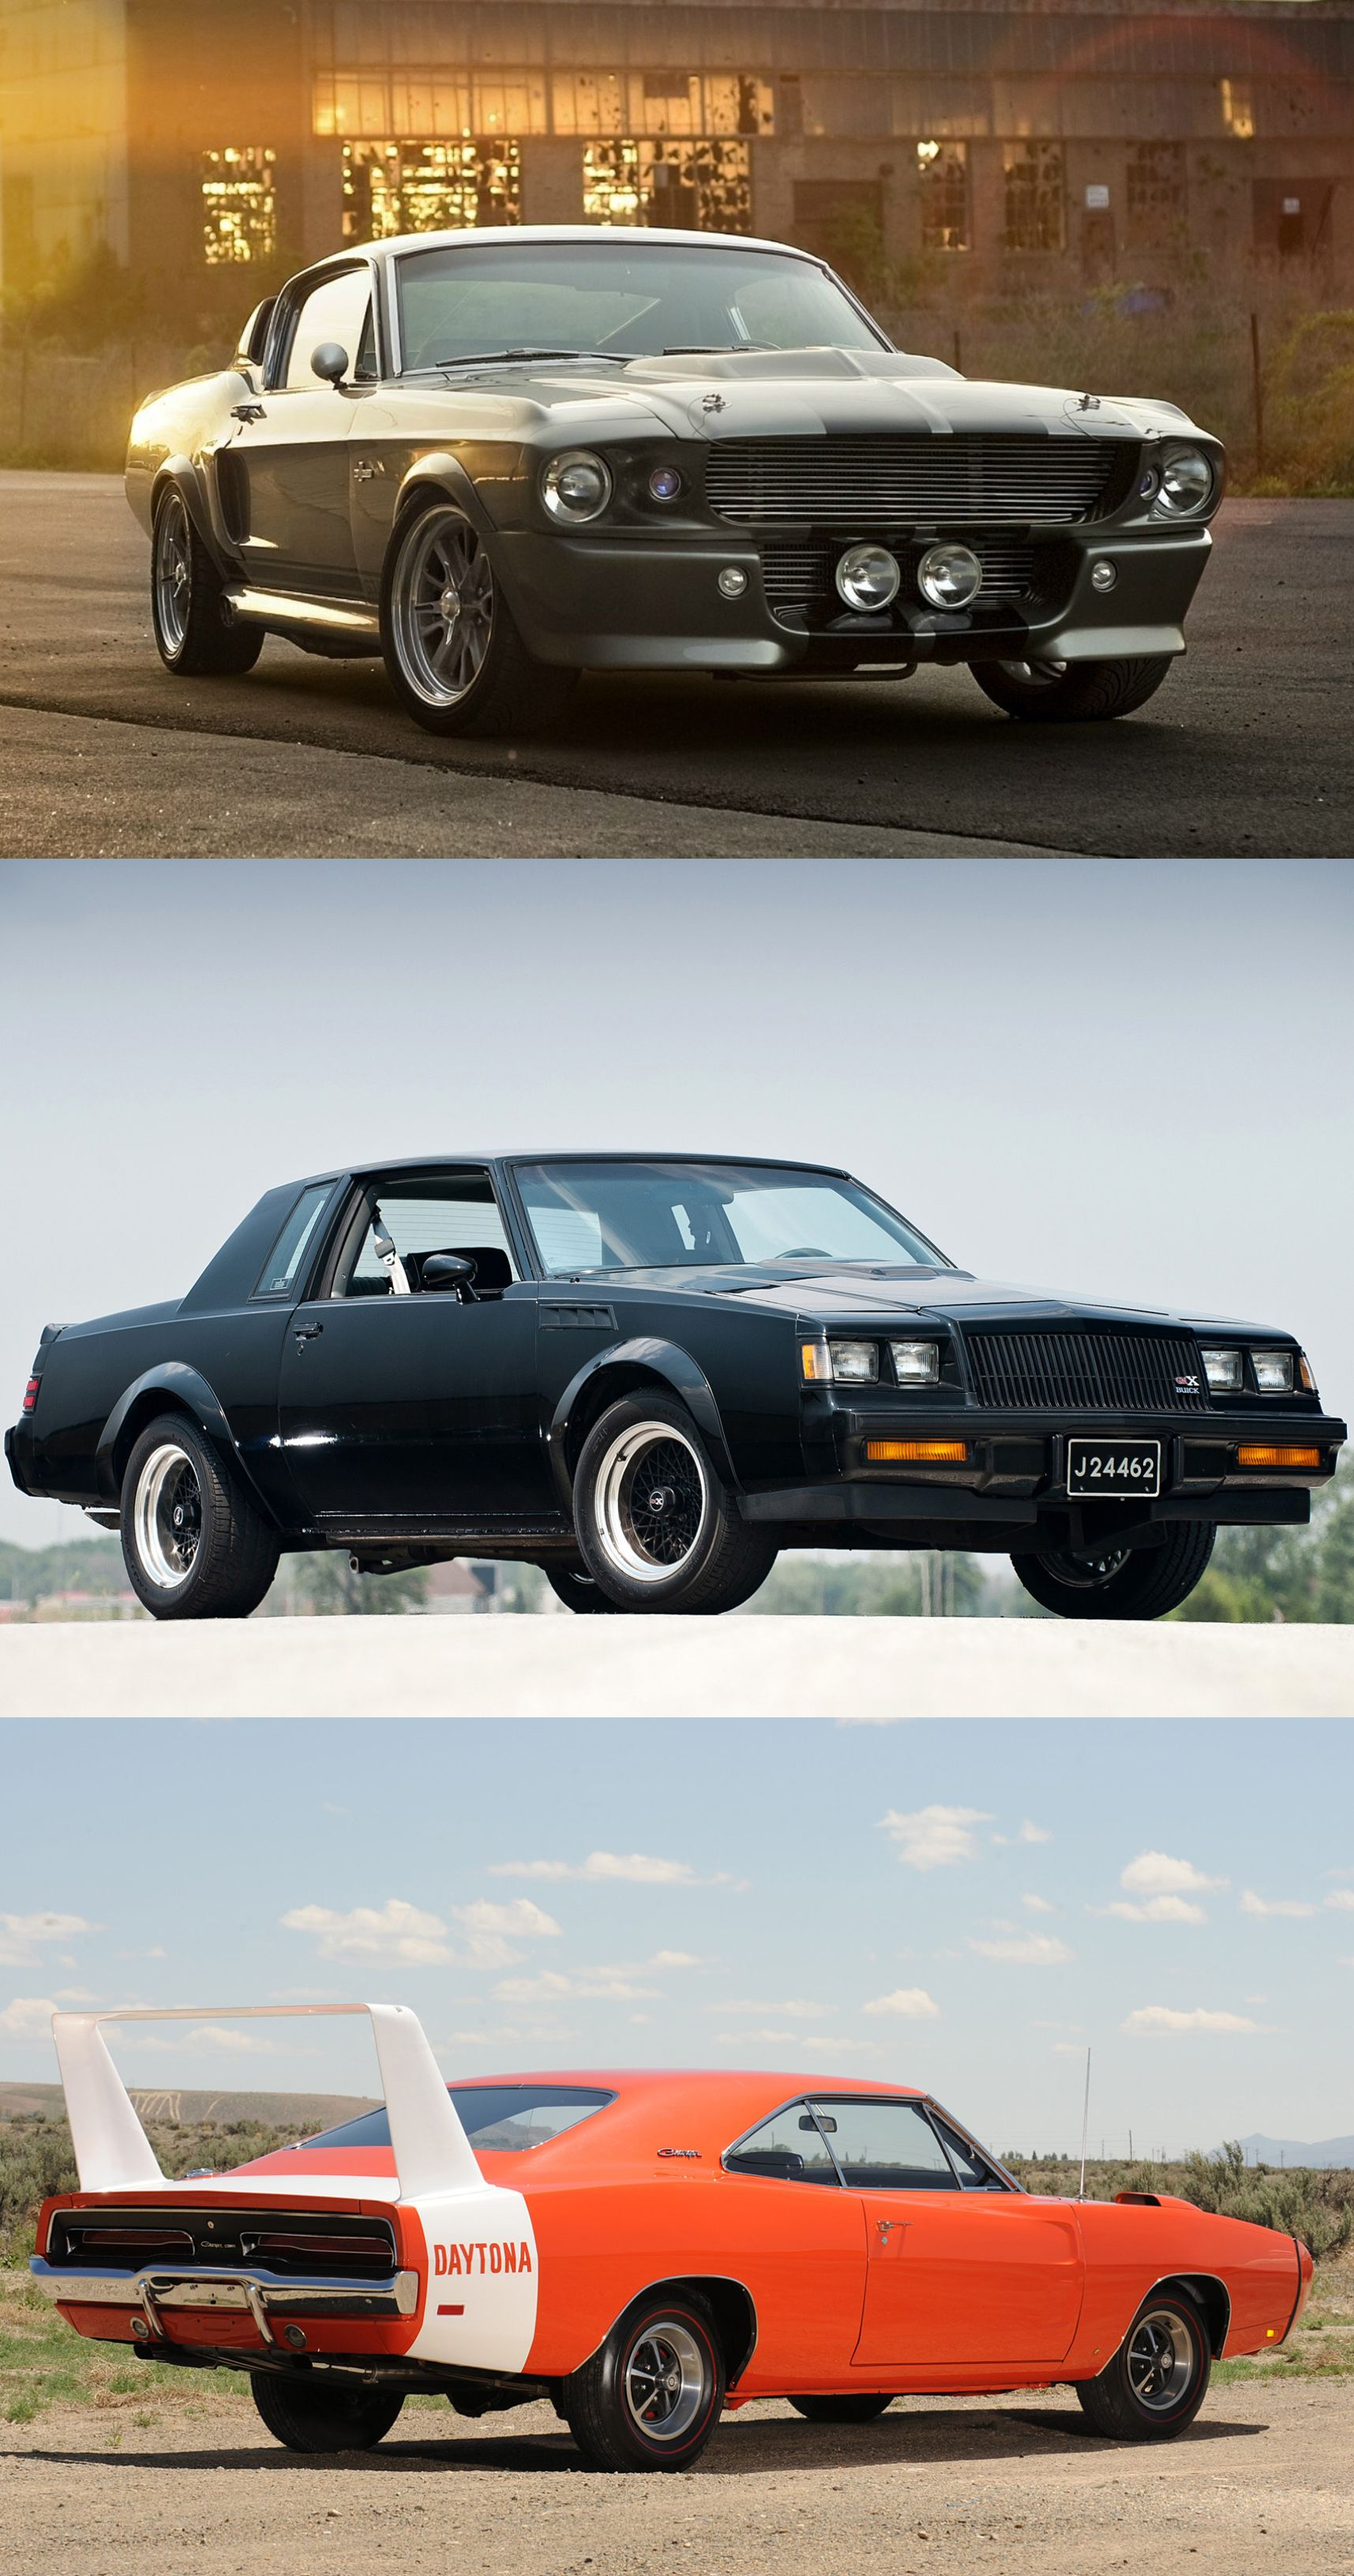 10 Legendary American Muscle Cars Of All Time Muscle Cars Ford Mustang Shelby Gt500 Mustang Shelby